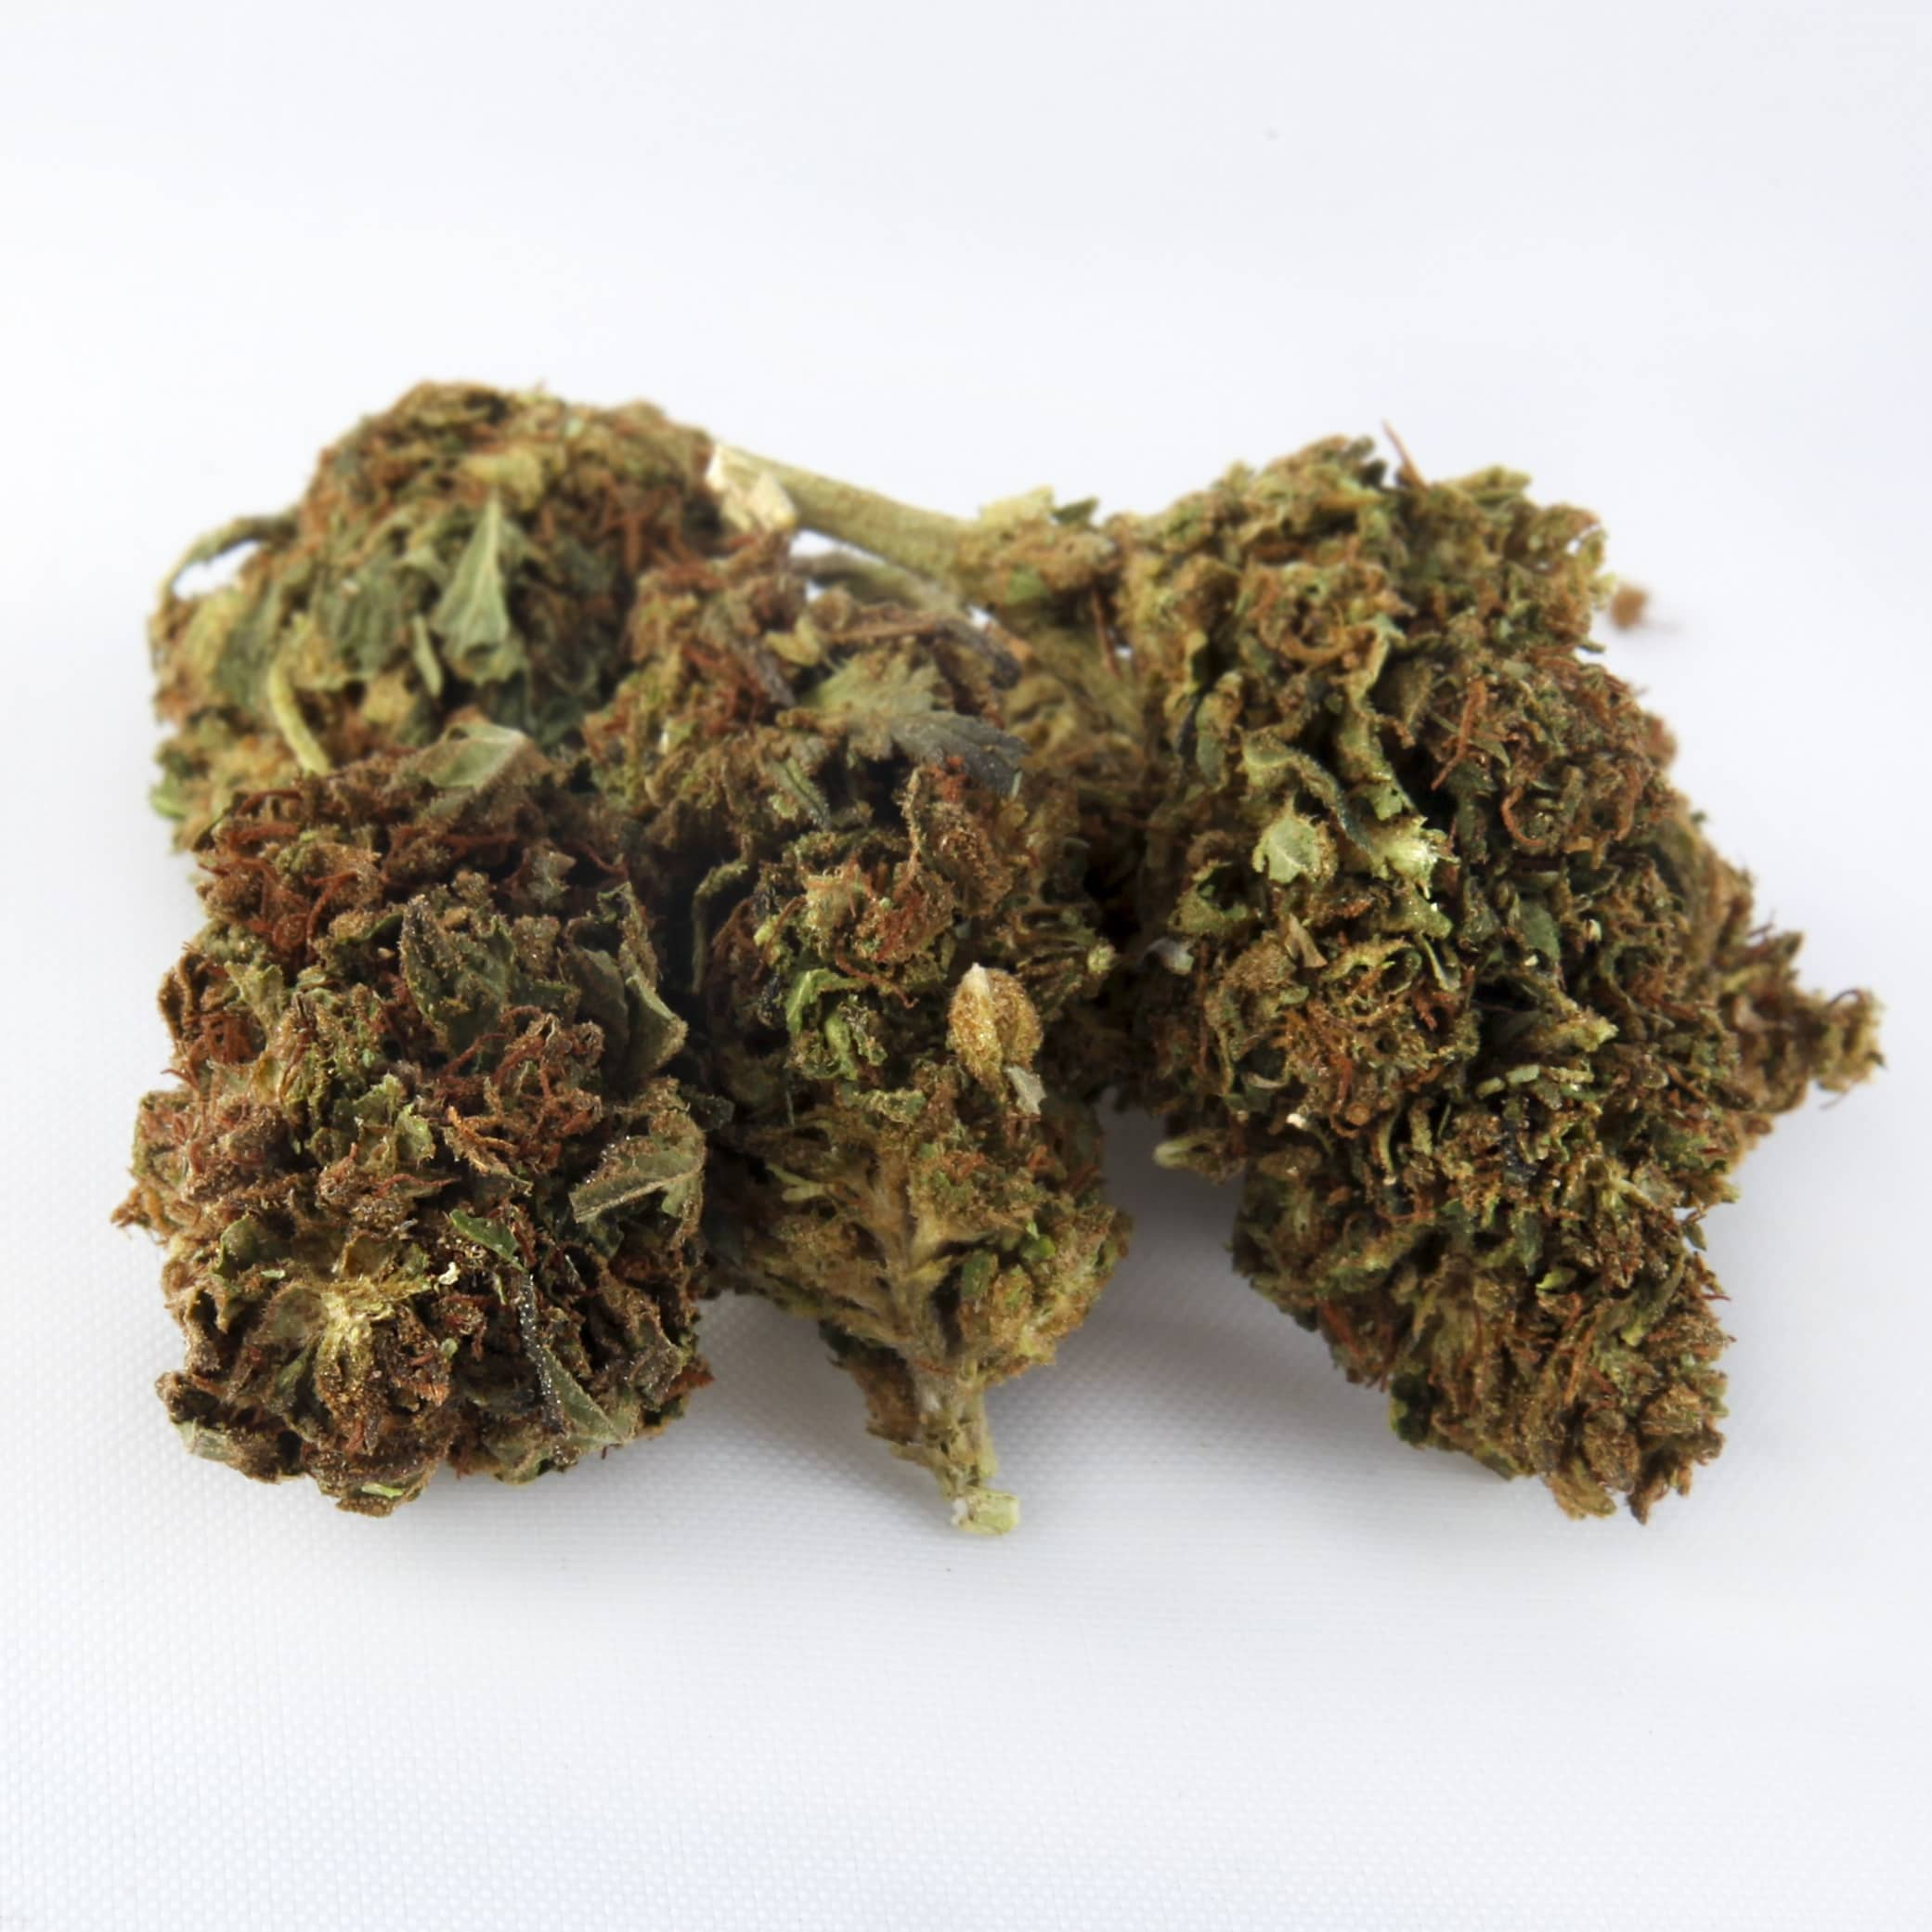 Silver Haze strain premium hemp flower for sale